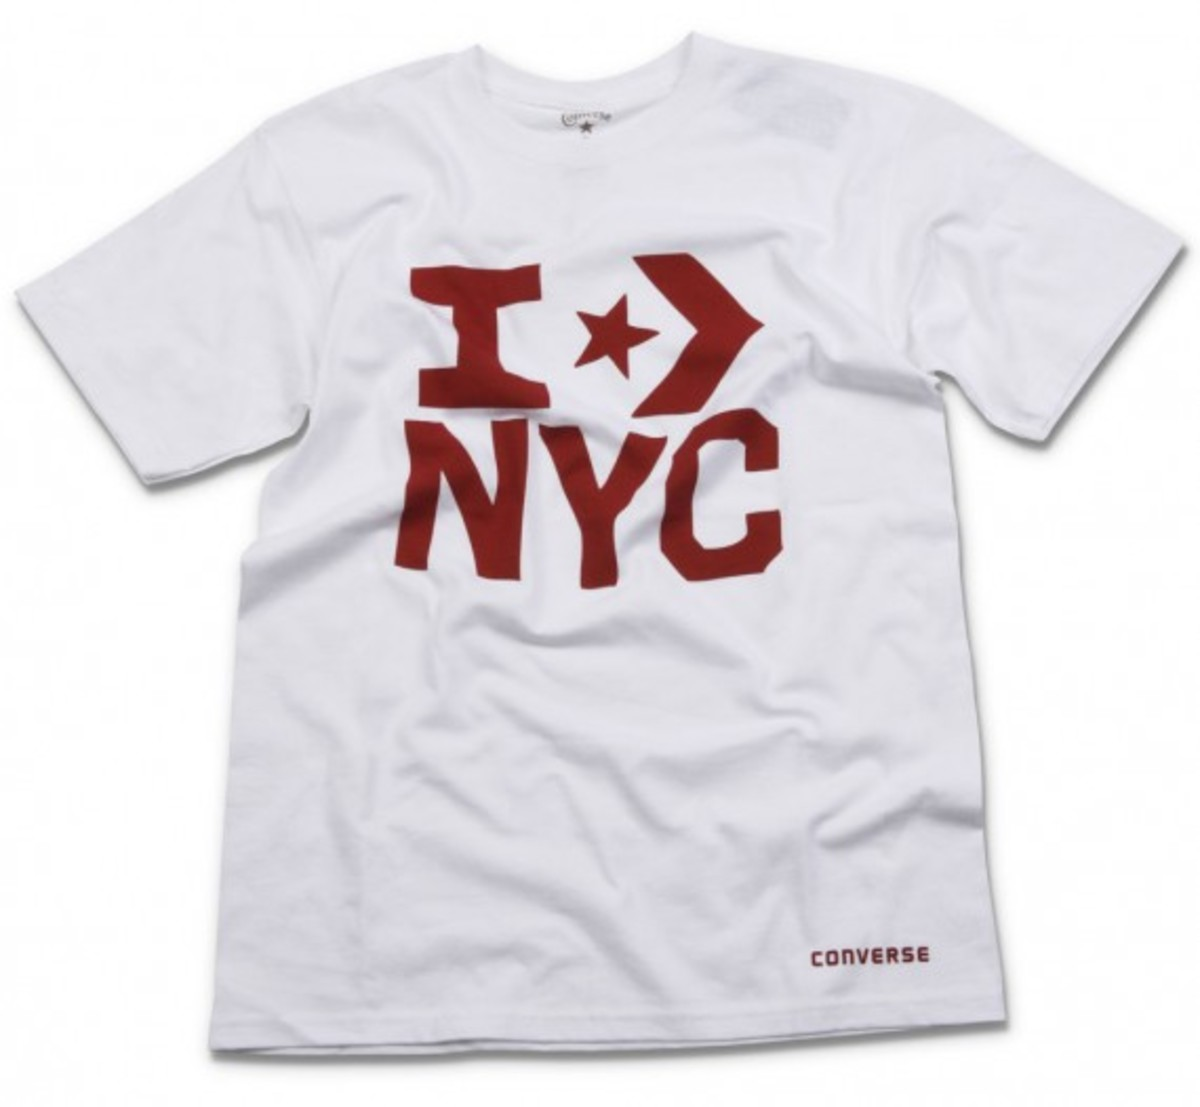 e7b2b4edf962d4 CONVERSE SoHo NYC Store - Exclusive Products - Freshness Mag